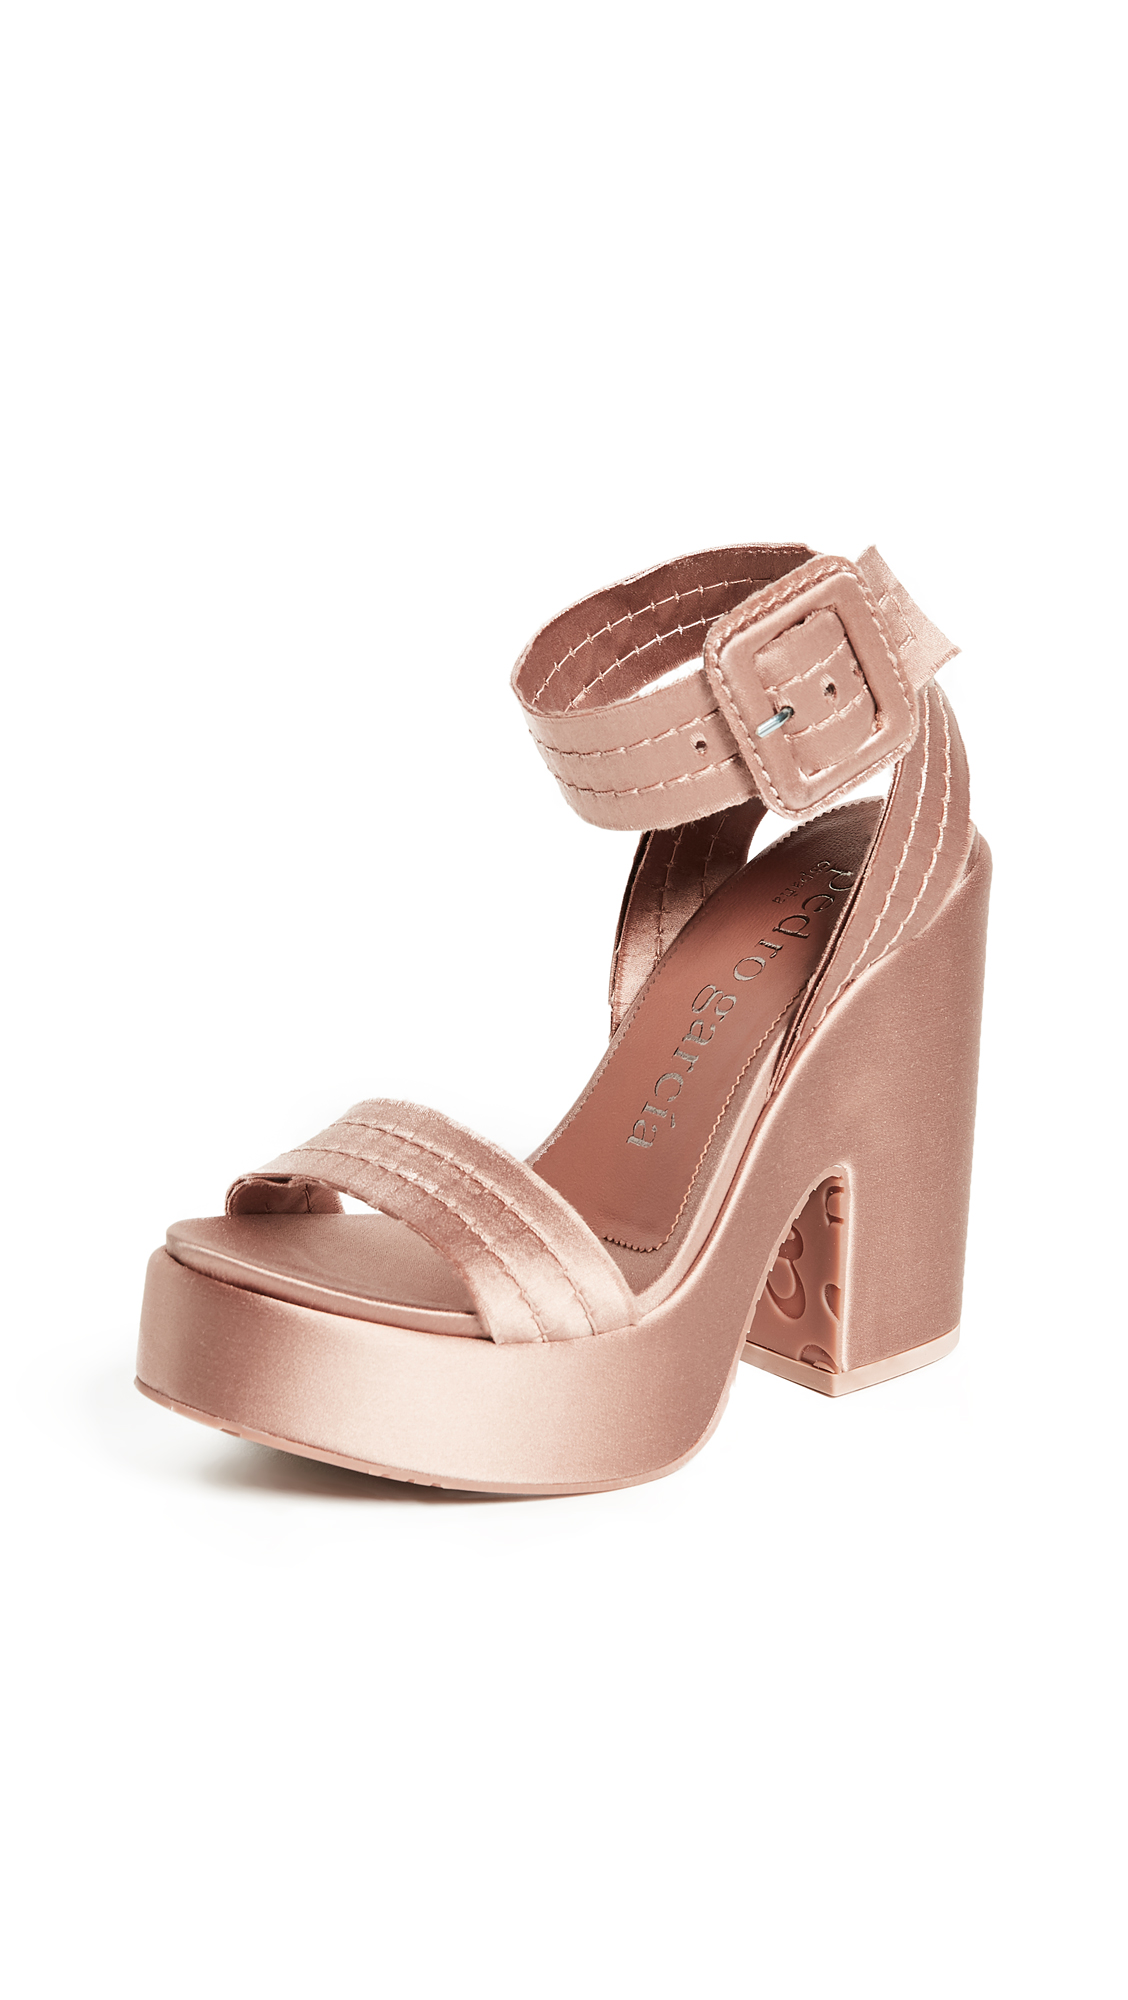 Pedro Garcia Thora Platform Sandals - Bisque